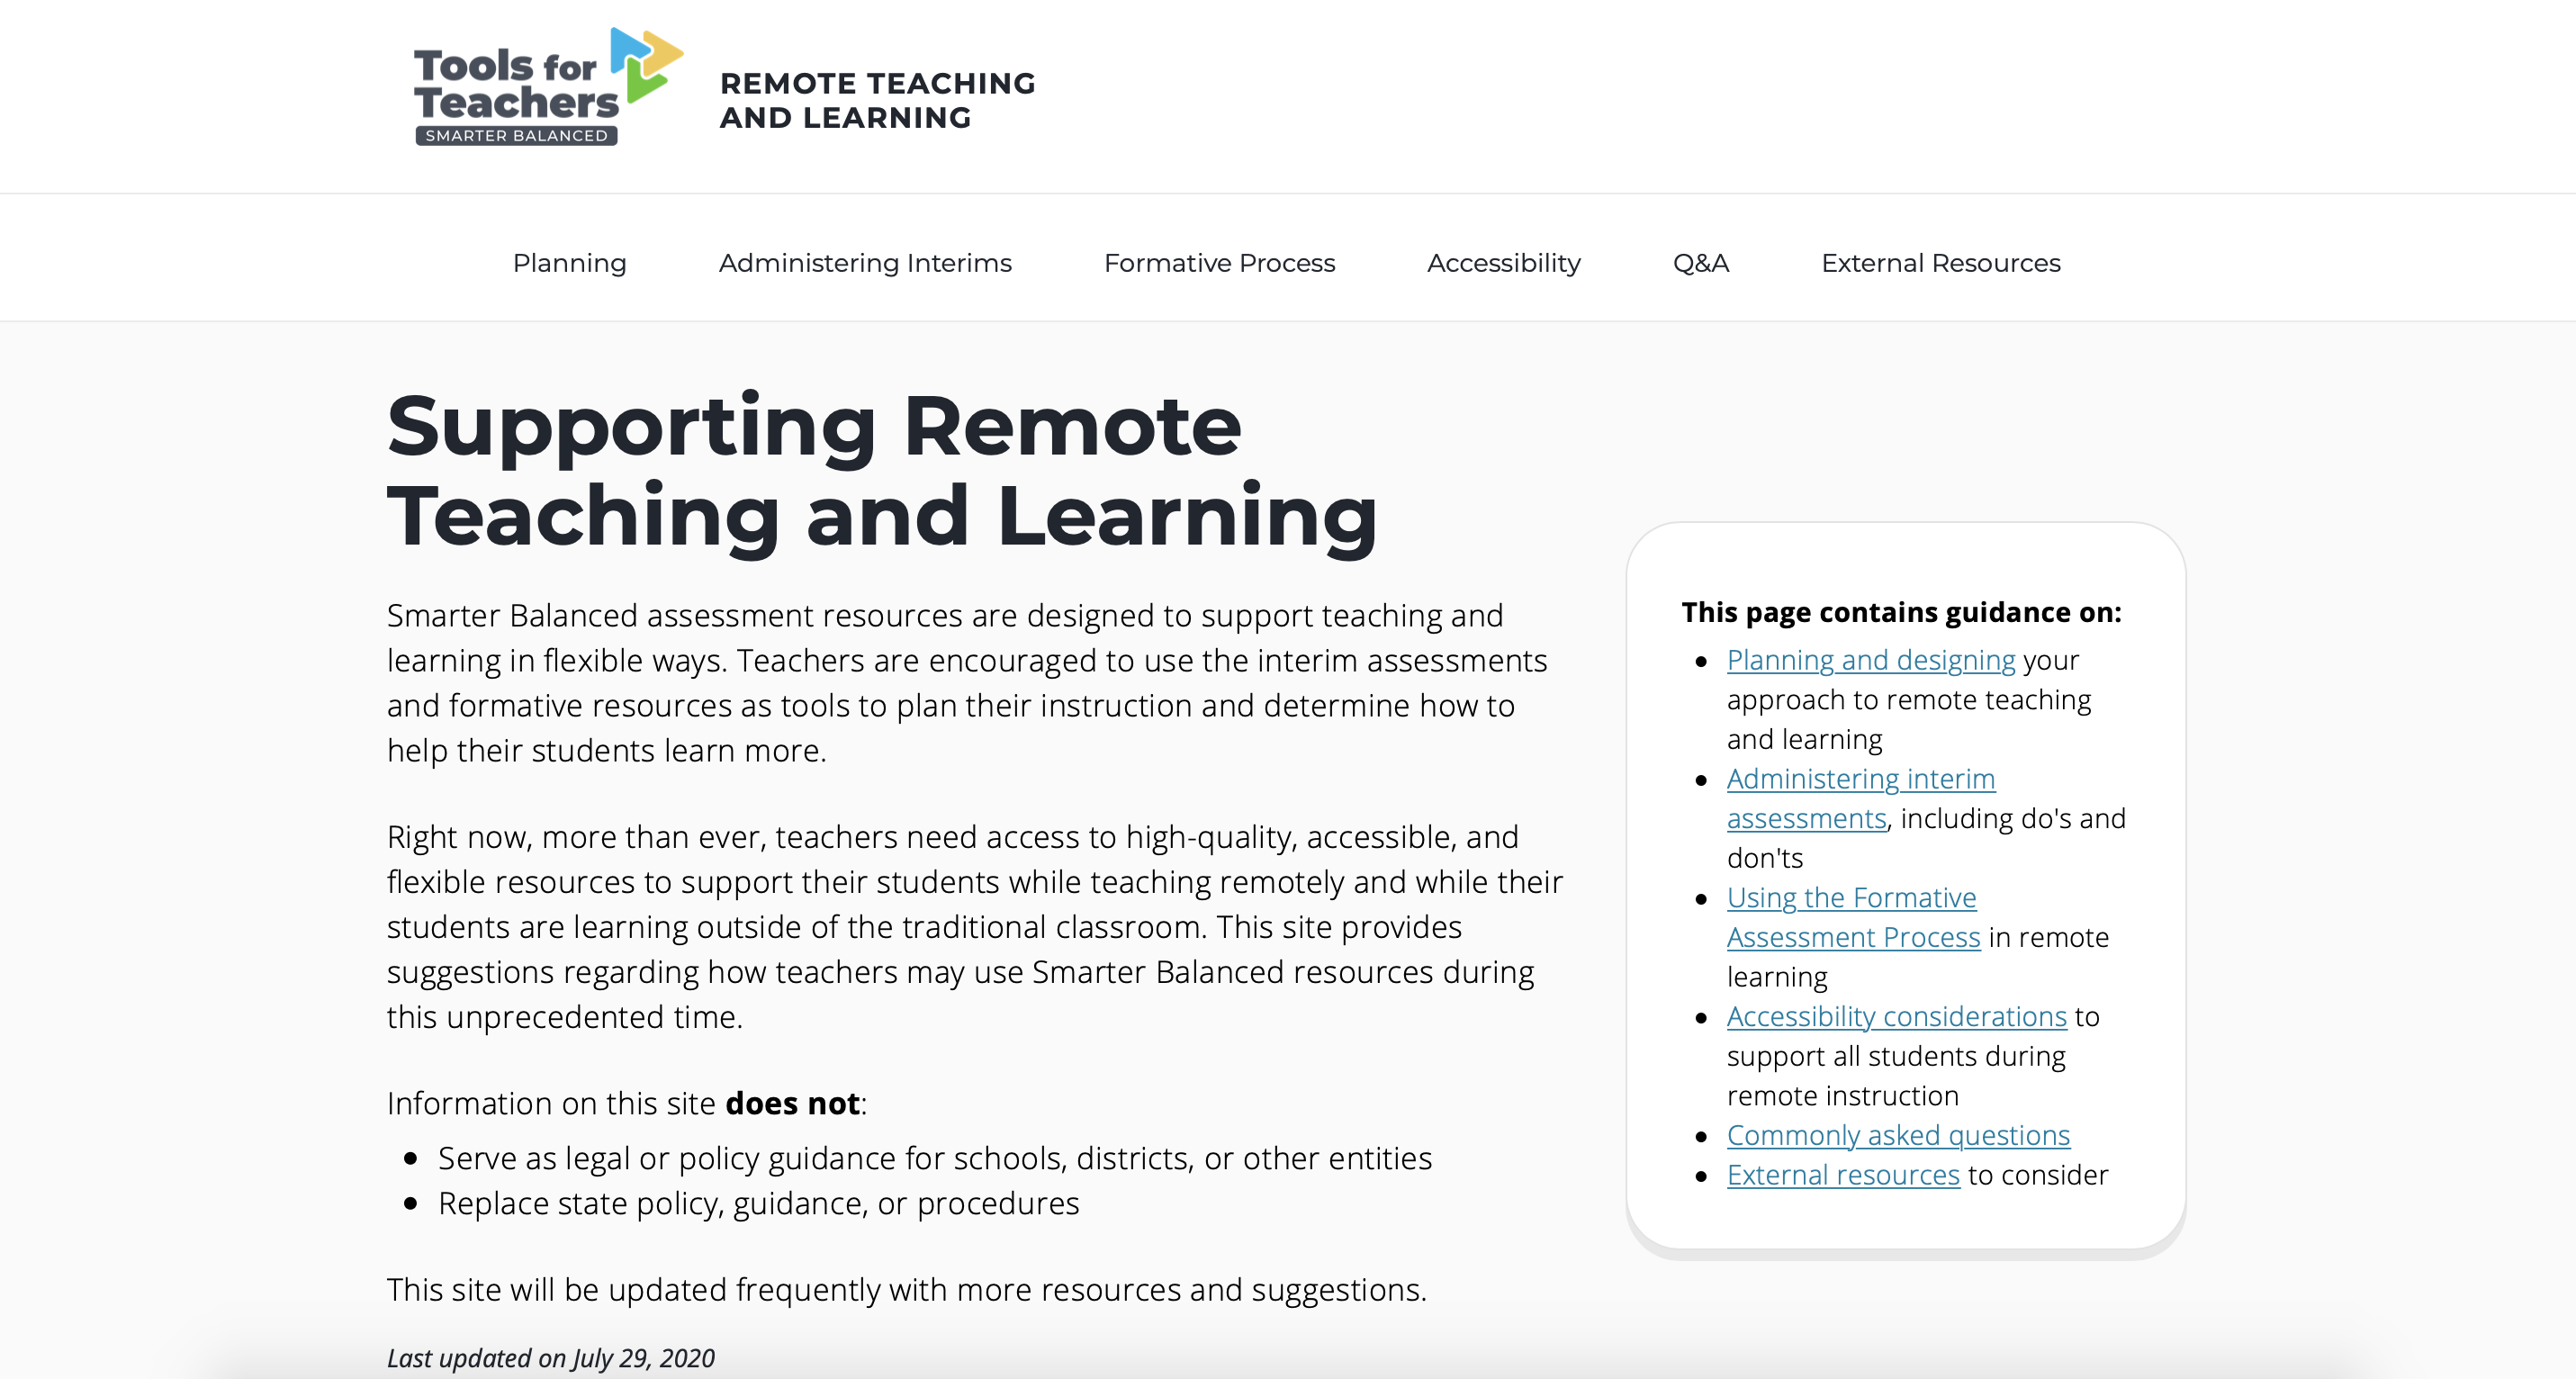 Screenshot of the Tools for Teachers Remote Teaching and Learning website homepage.